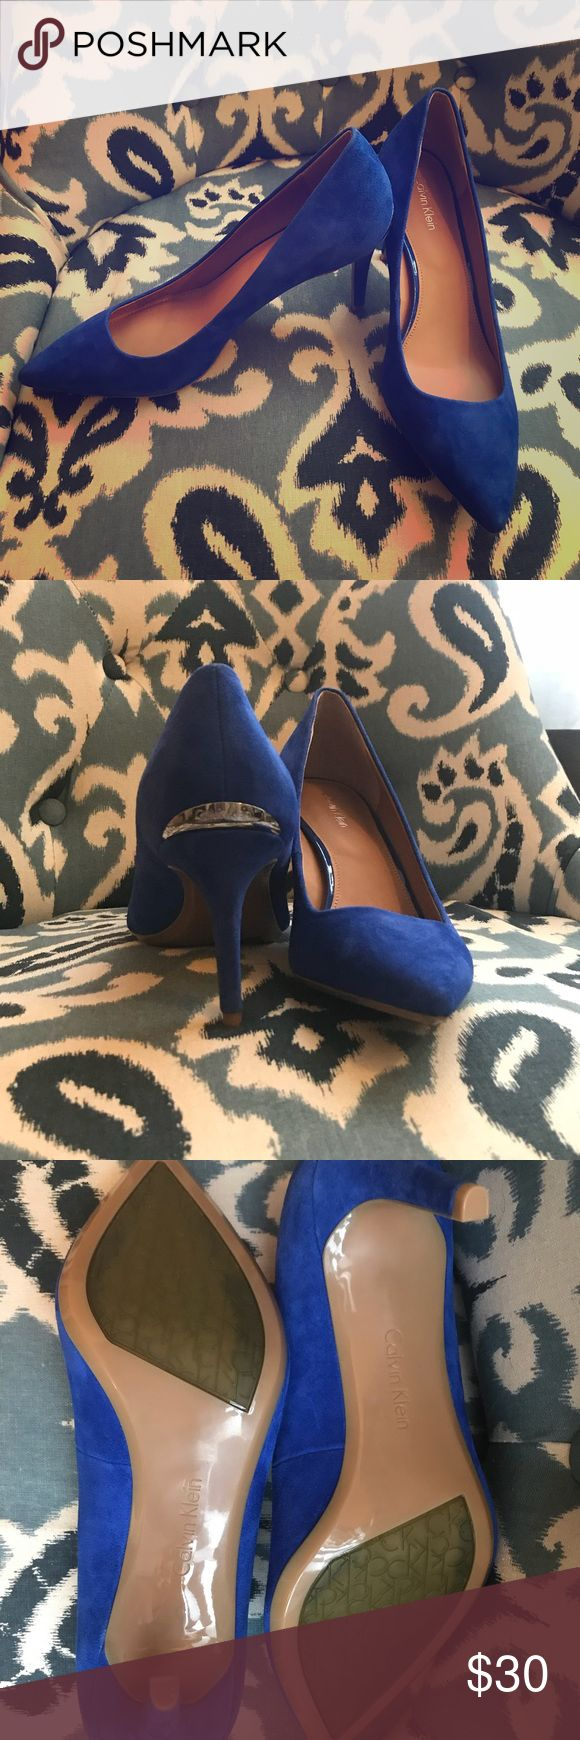 Calvin Klein Cobalt Blue Suede Pumps NWOT - Gorgeous pumps, perfect to dress up or wear casually with jeans. Never worn, I normally wear 8 1/2 and these are true to size 8 🙂😉 Calvin Klein Shoes Heels